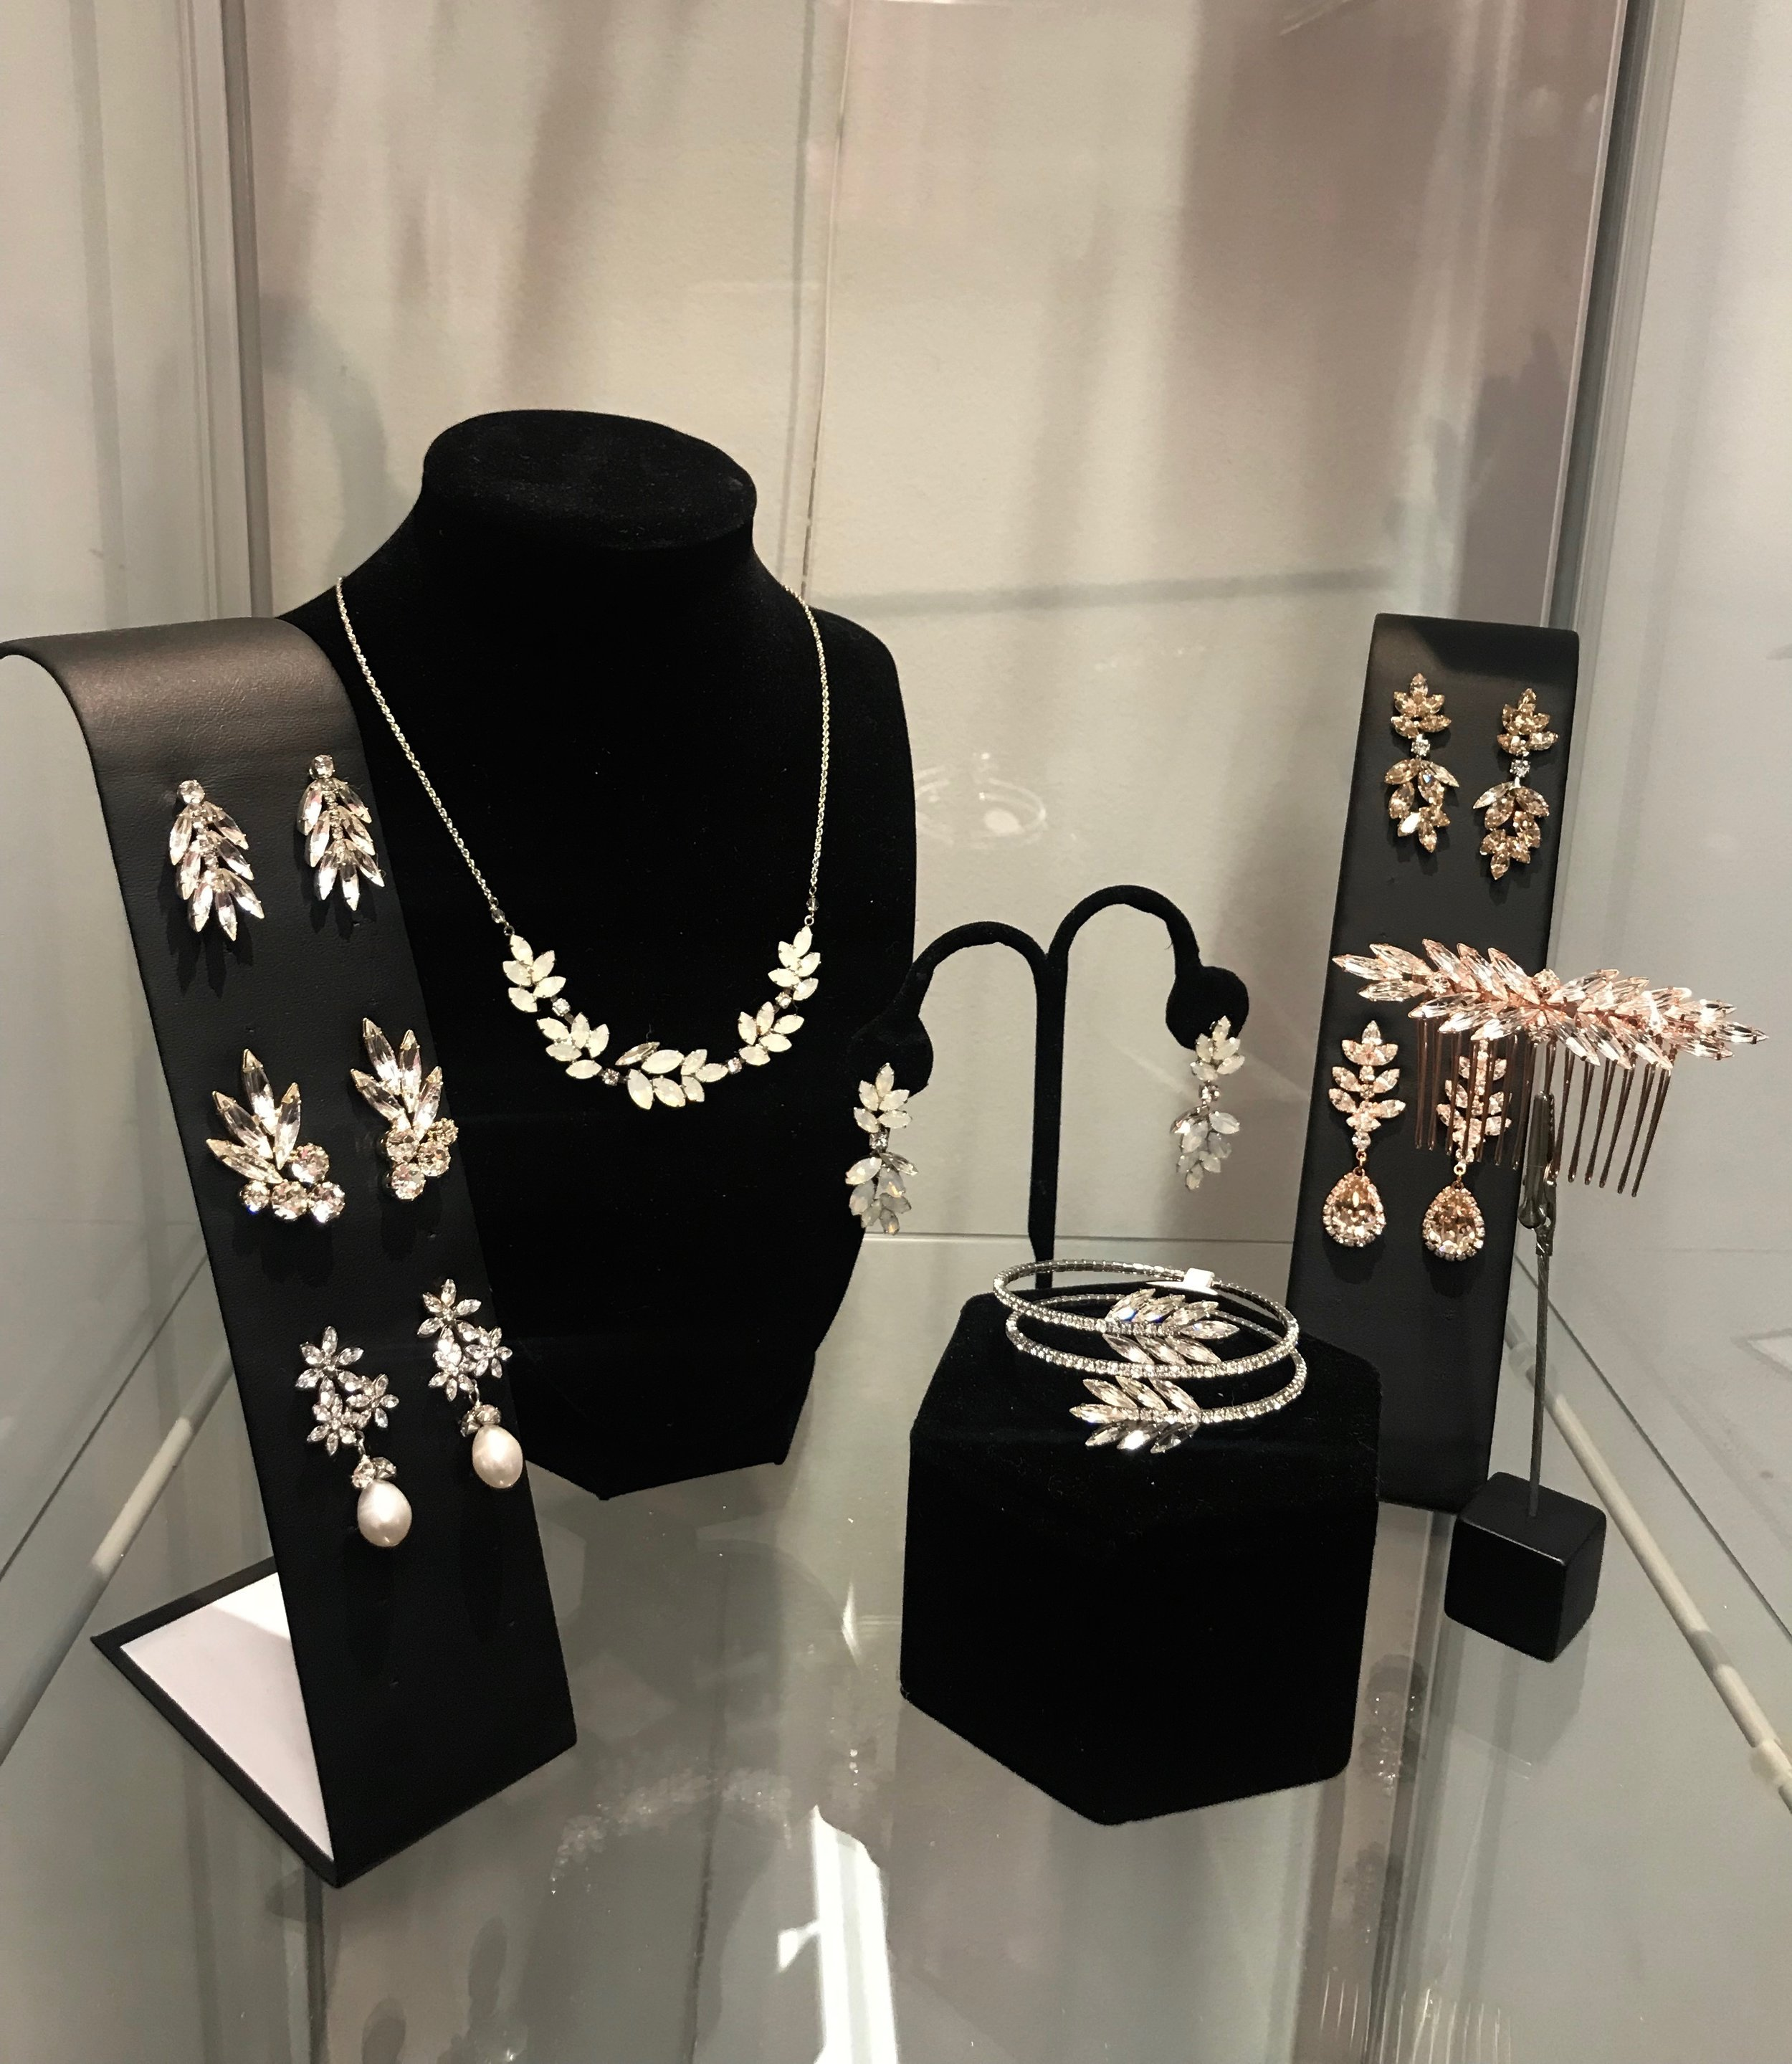 Ti Adoro Jewelry and Accessories